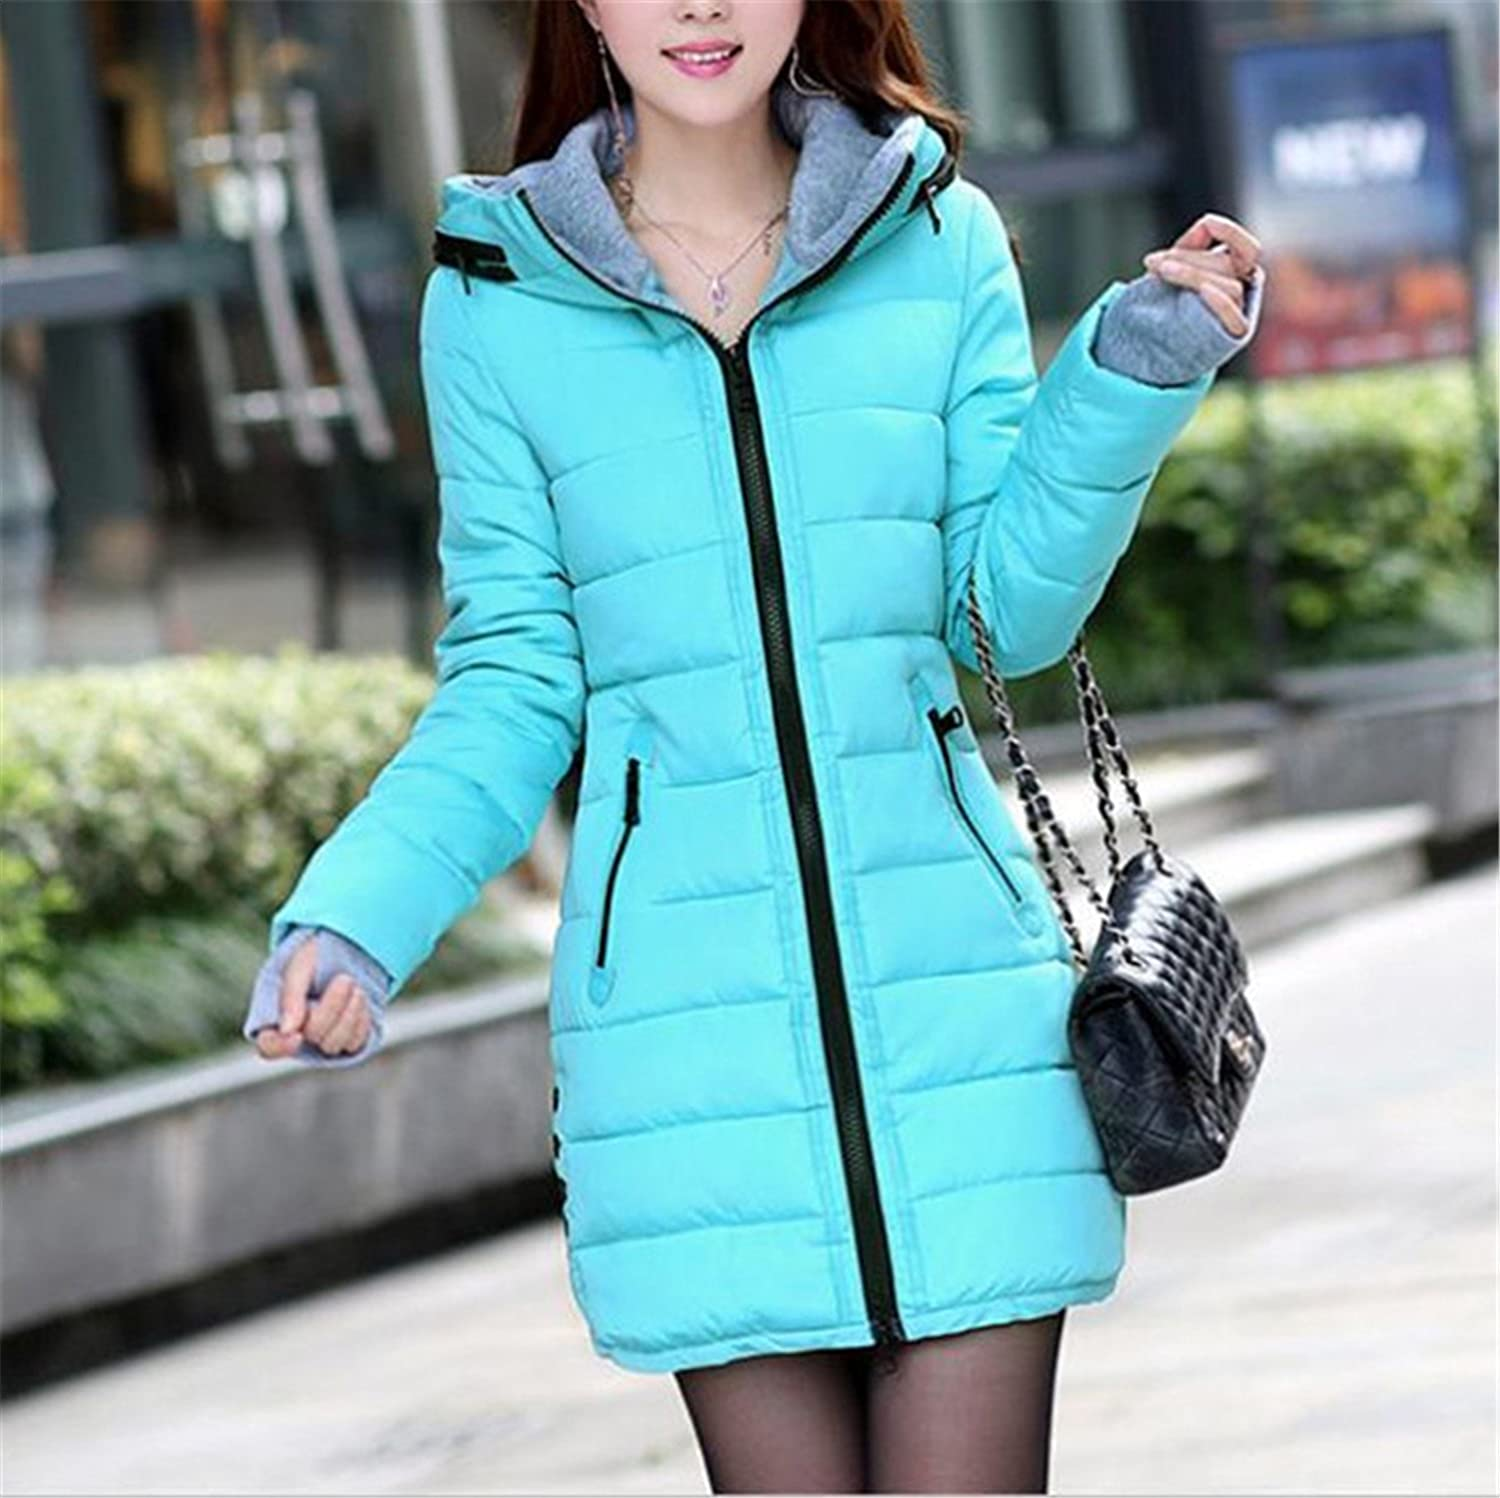 Amazon.com: Dapengzhu New Winter Jacket Women Parka With Gloves Cotton Maxi Wadded Jackets Coats Plus Size Long Jacket C2261 Dark Green XXXL: Clothing